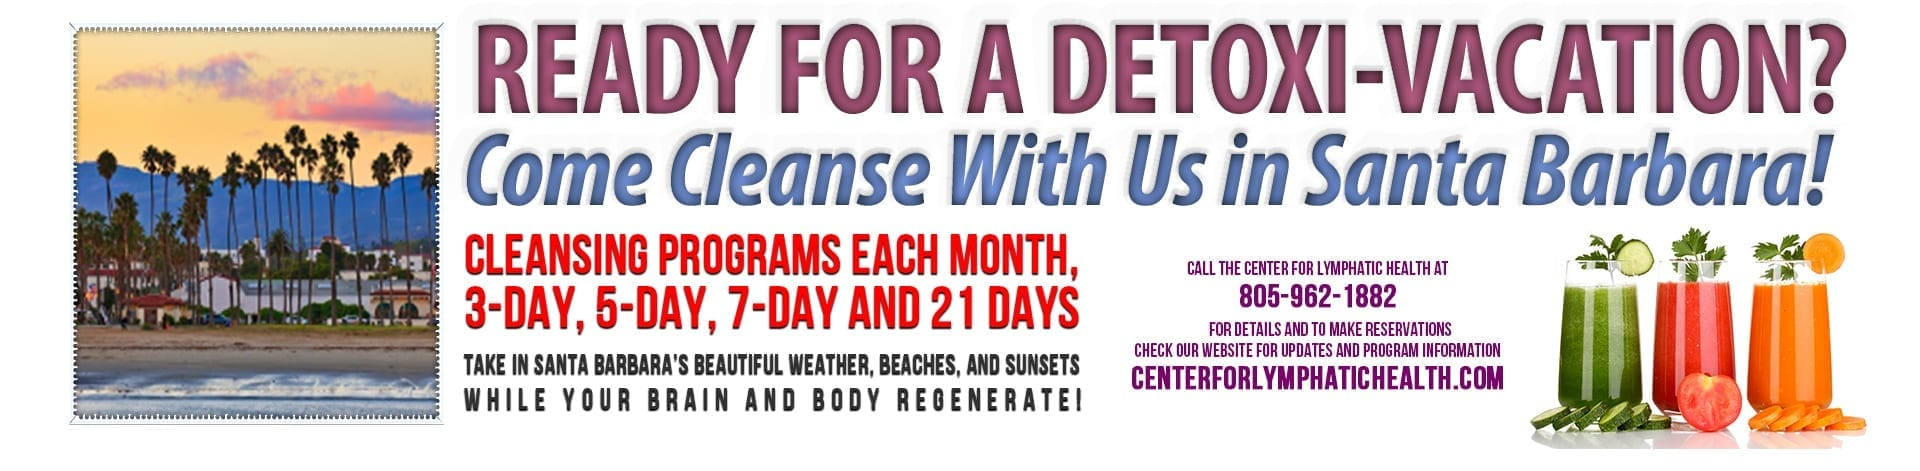 Register for an Anti-Aging Cleanse by the Sea | Click Above for Detailed Flyer